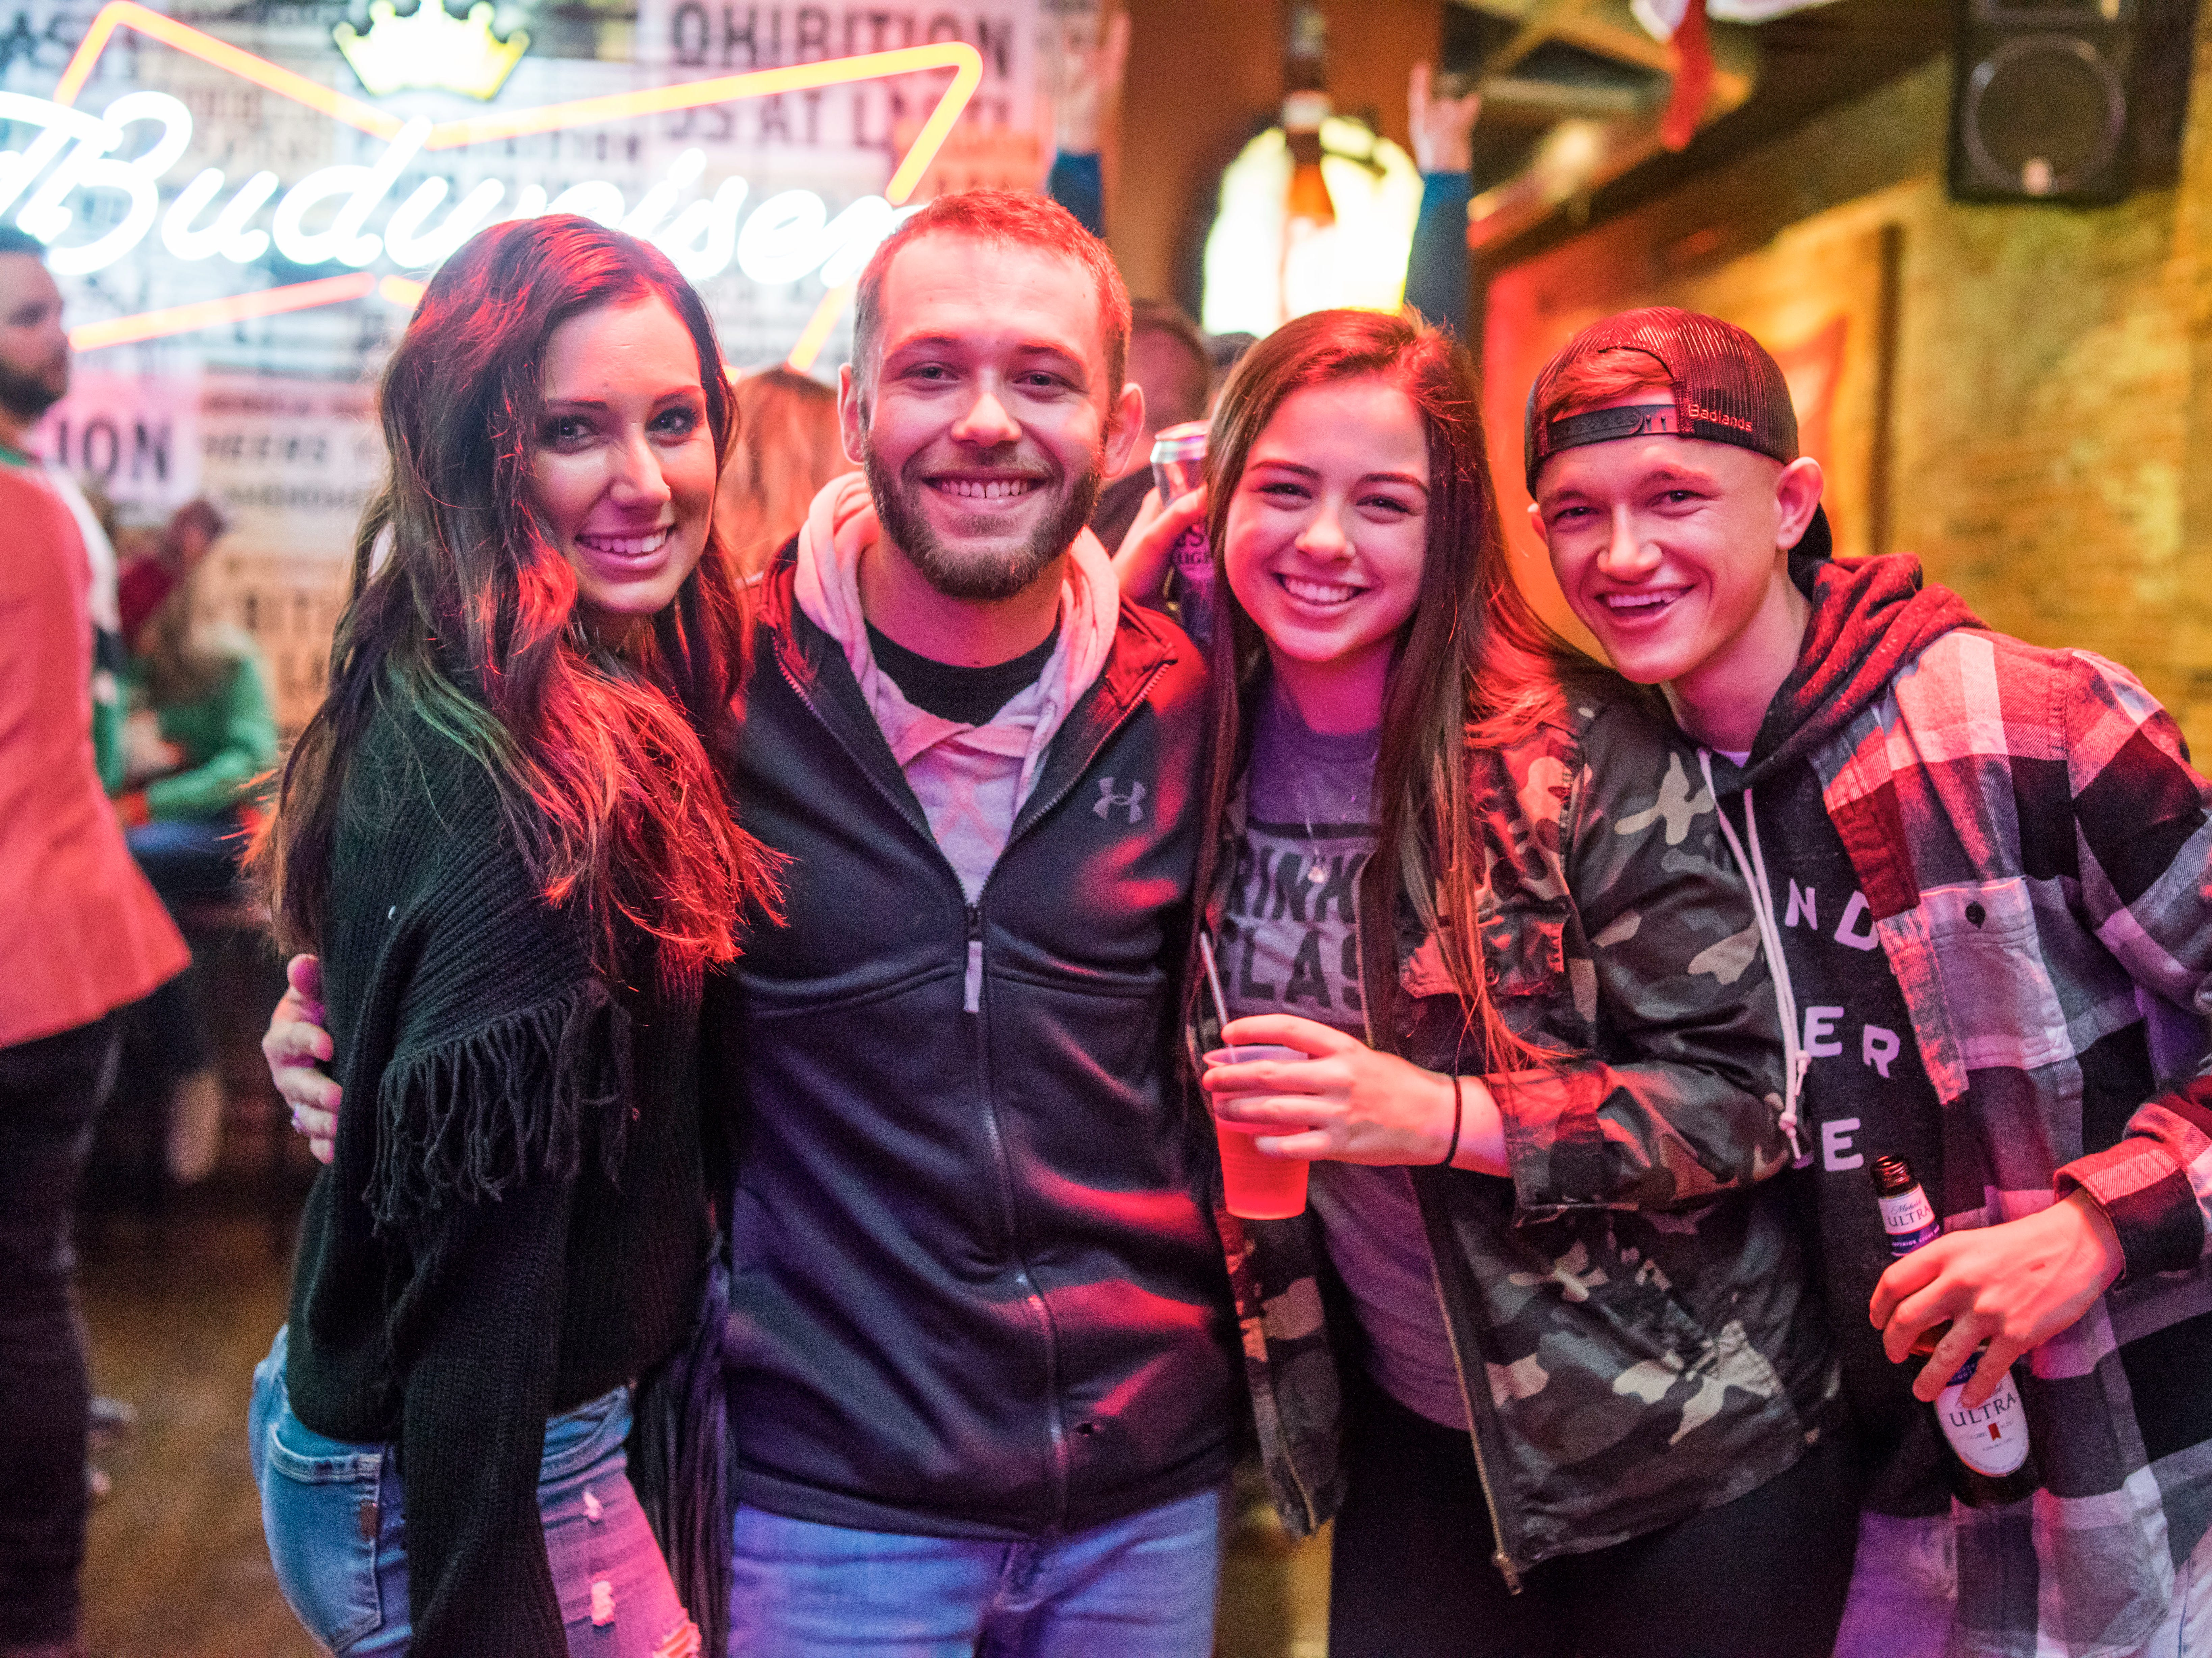 Mandy Johnson, 24, Wade Mahlstadt, 24, Taryn Swartz, 22, and Matt Johnson, 23, all of Des Moines, enjoying their night out, Friday, Dec. 21, at American Outlaws.